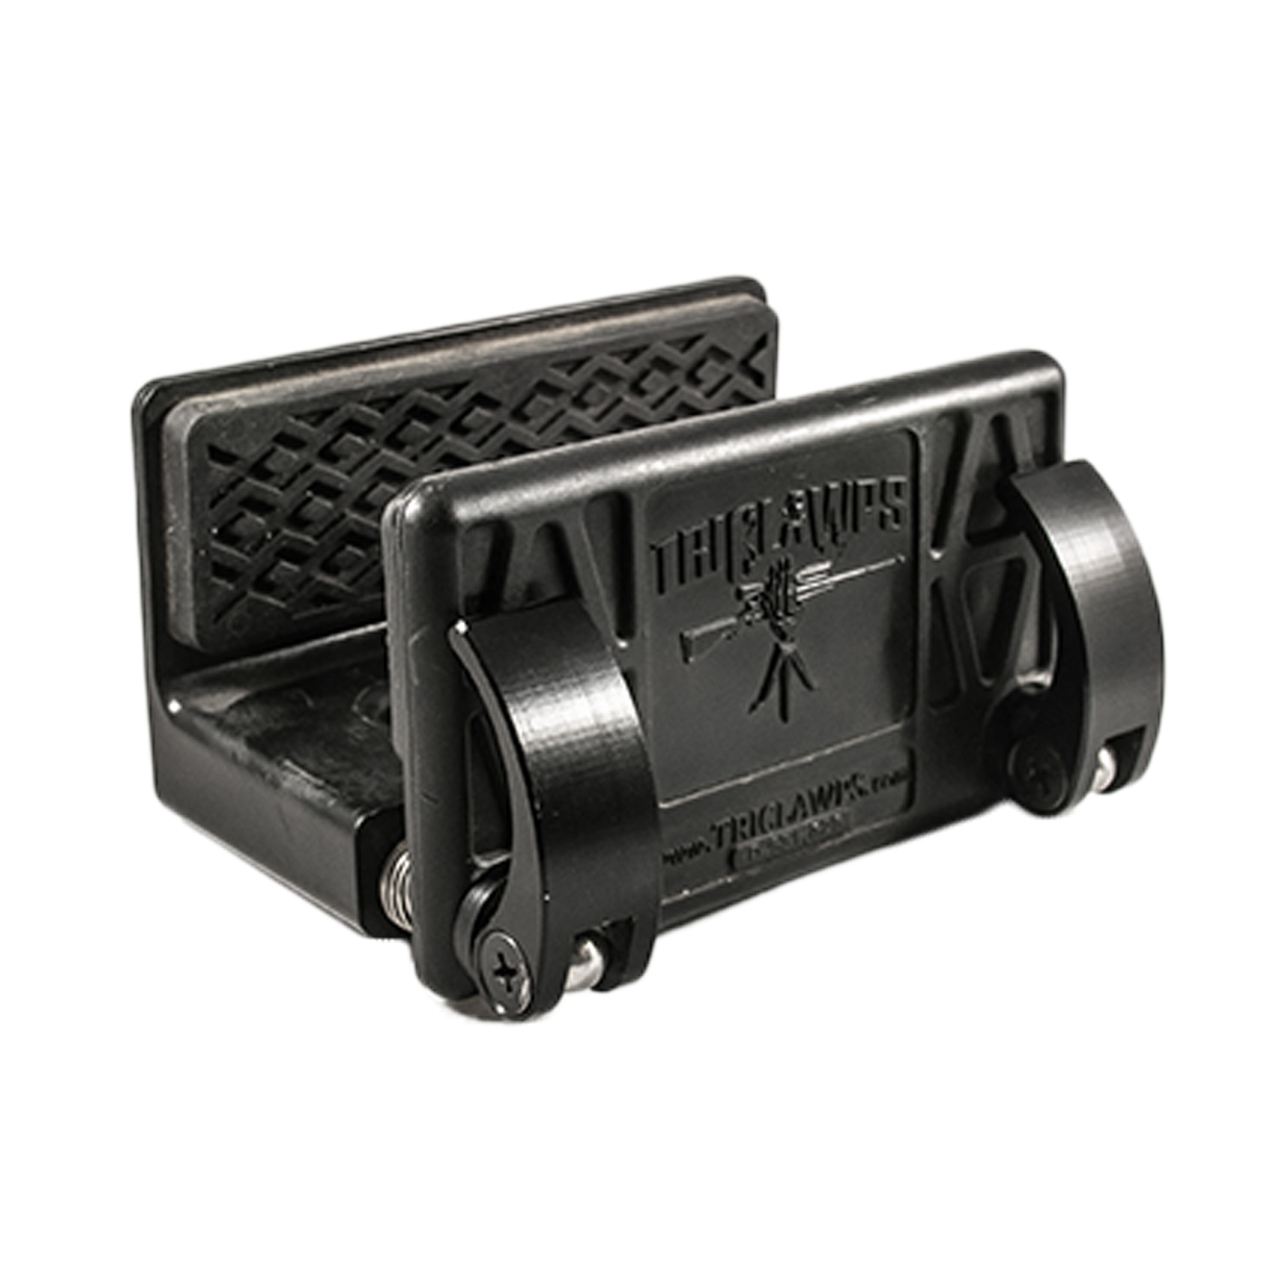 Two Vets Saddle Triclawps Double Cam (MOD 2)